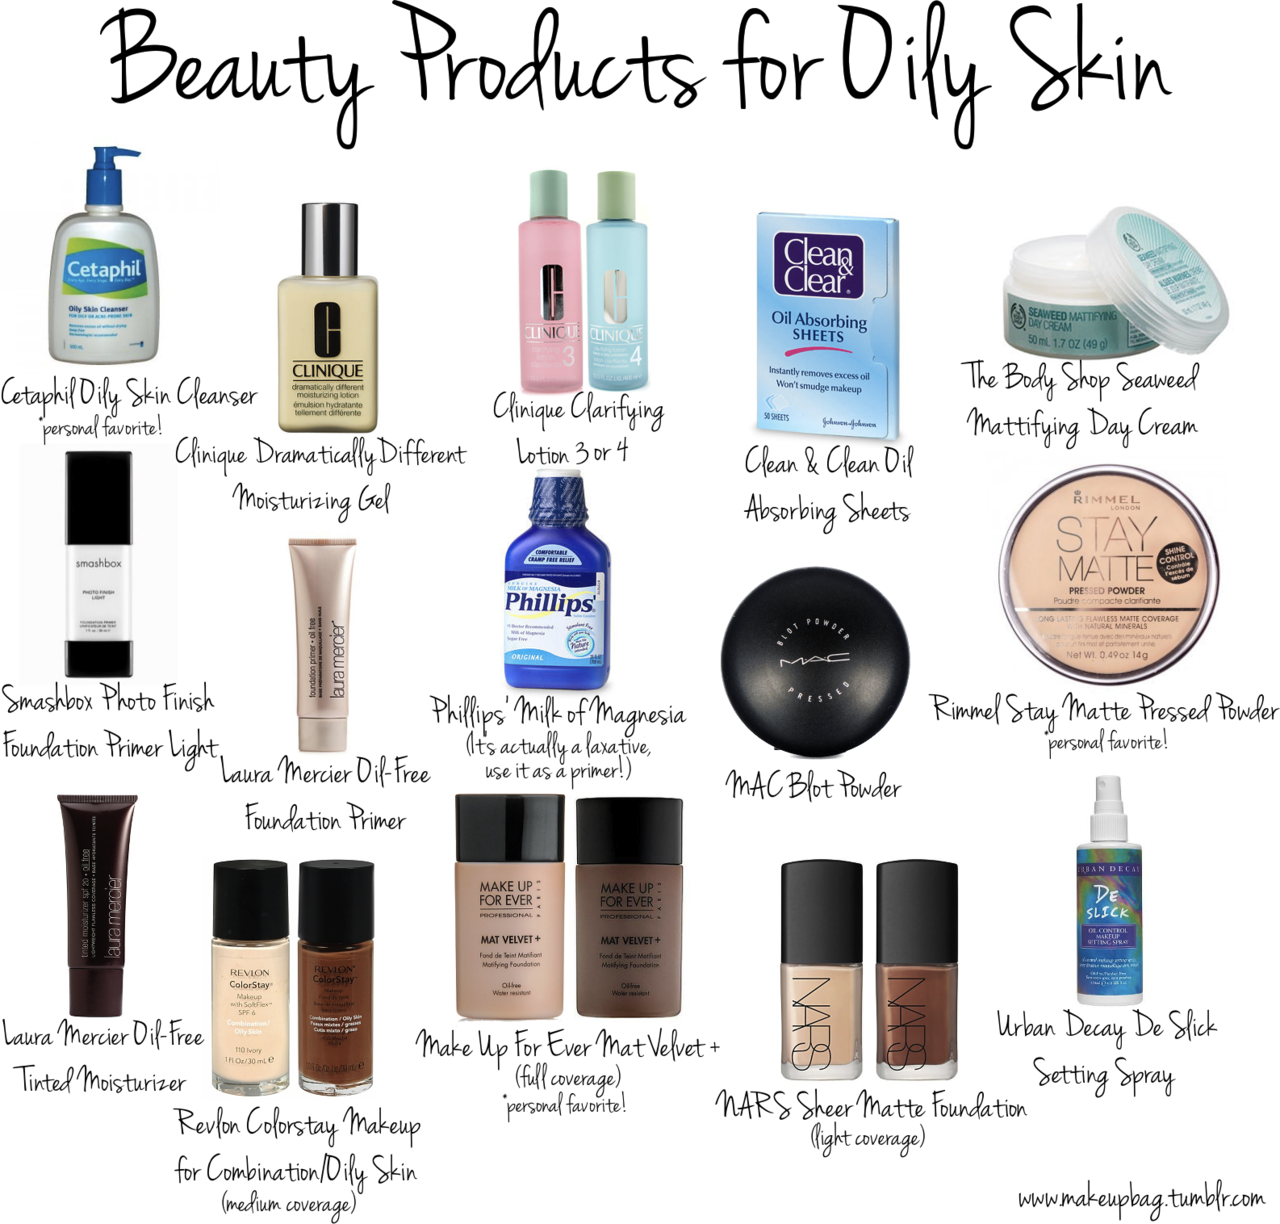 Products for oily skin my skin gets oily within a few